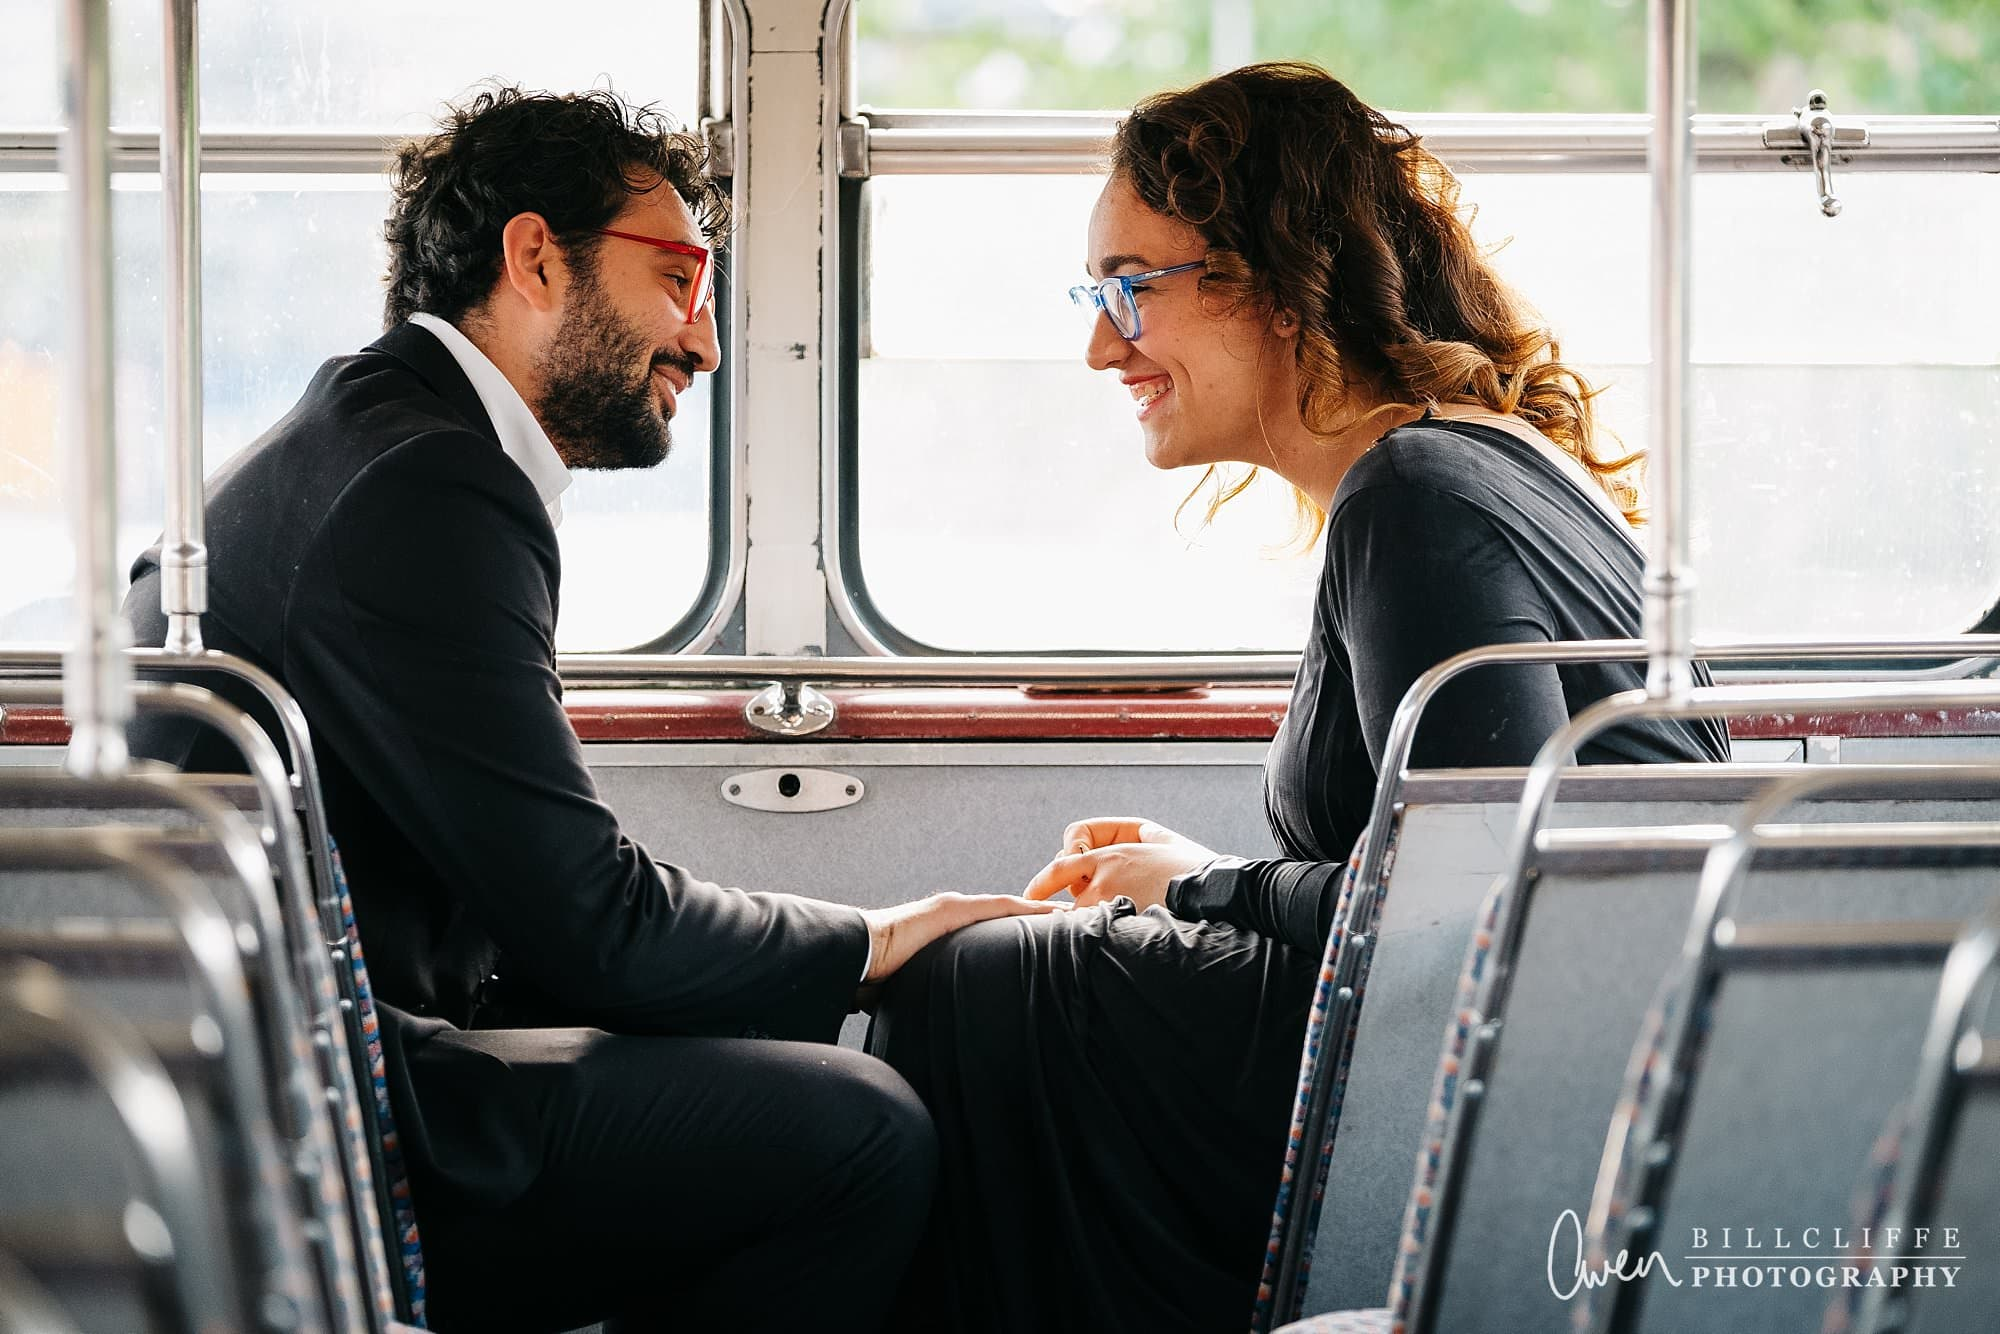 london engagement proposal photographer routemaster gr 004 - A Romantic Marriage Proposal on a London Routemaster Bus